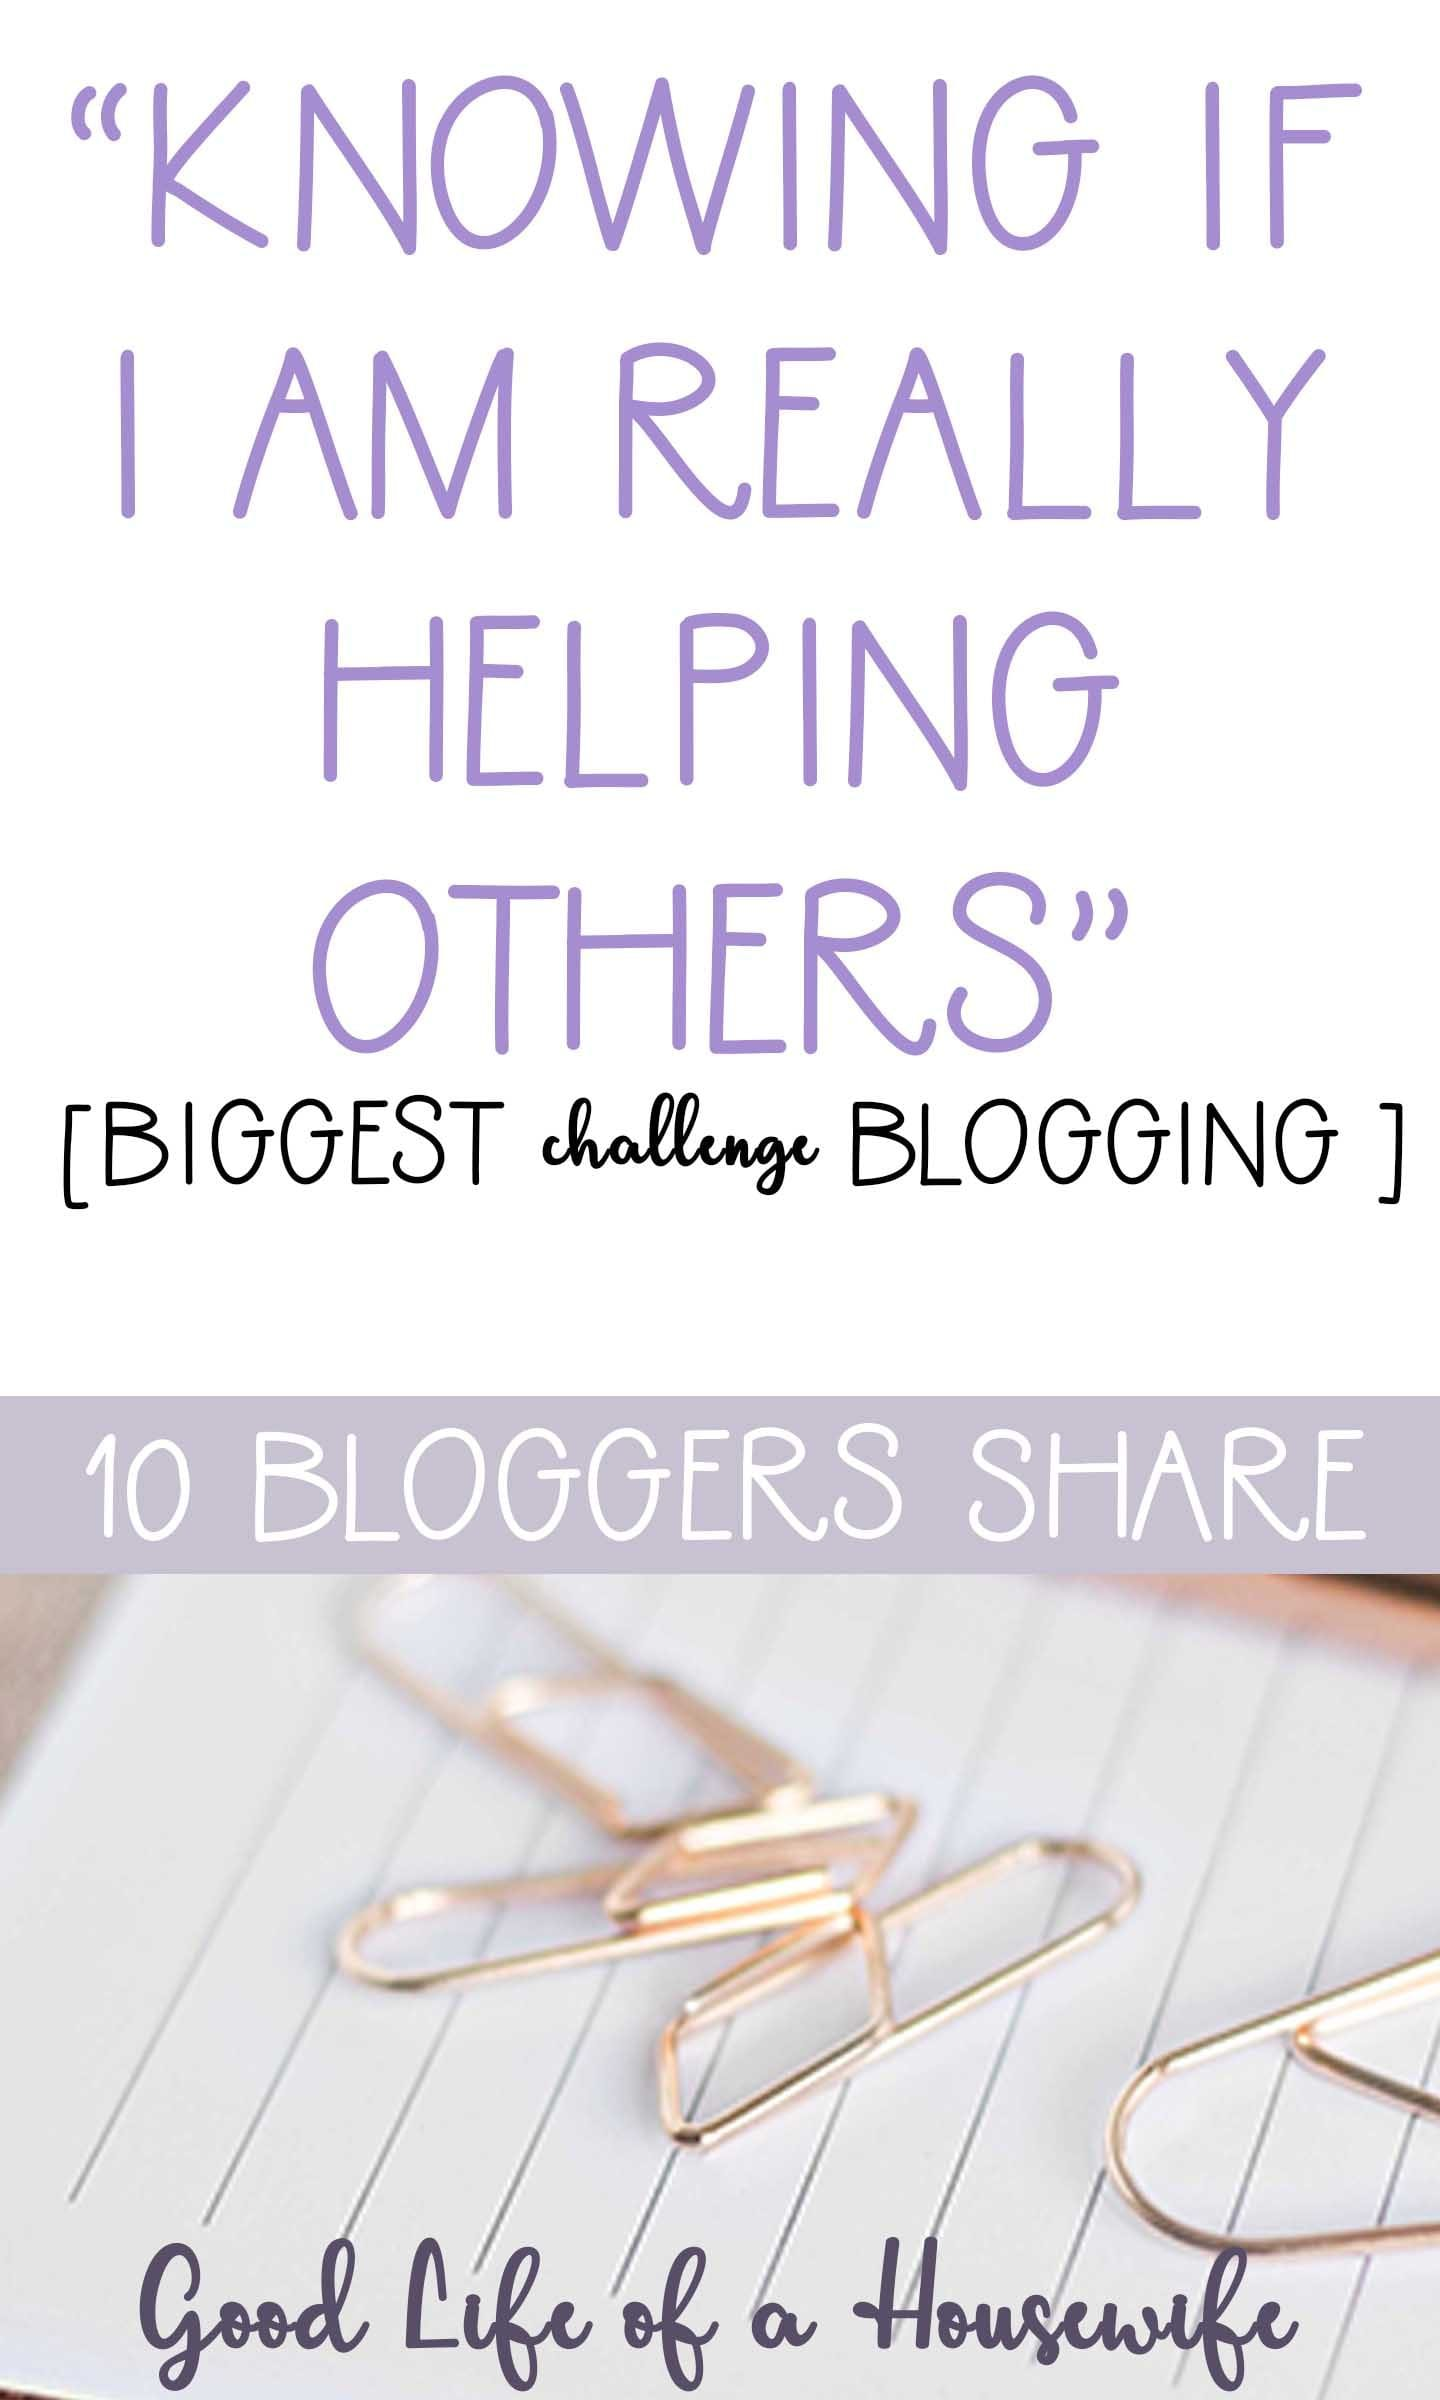 10 bloggers share their biggest challenge blogging. The challenge of knowing if I am helping others with my blog.